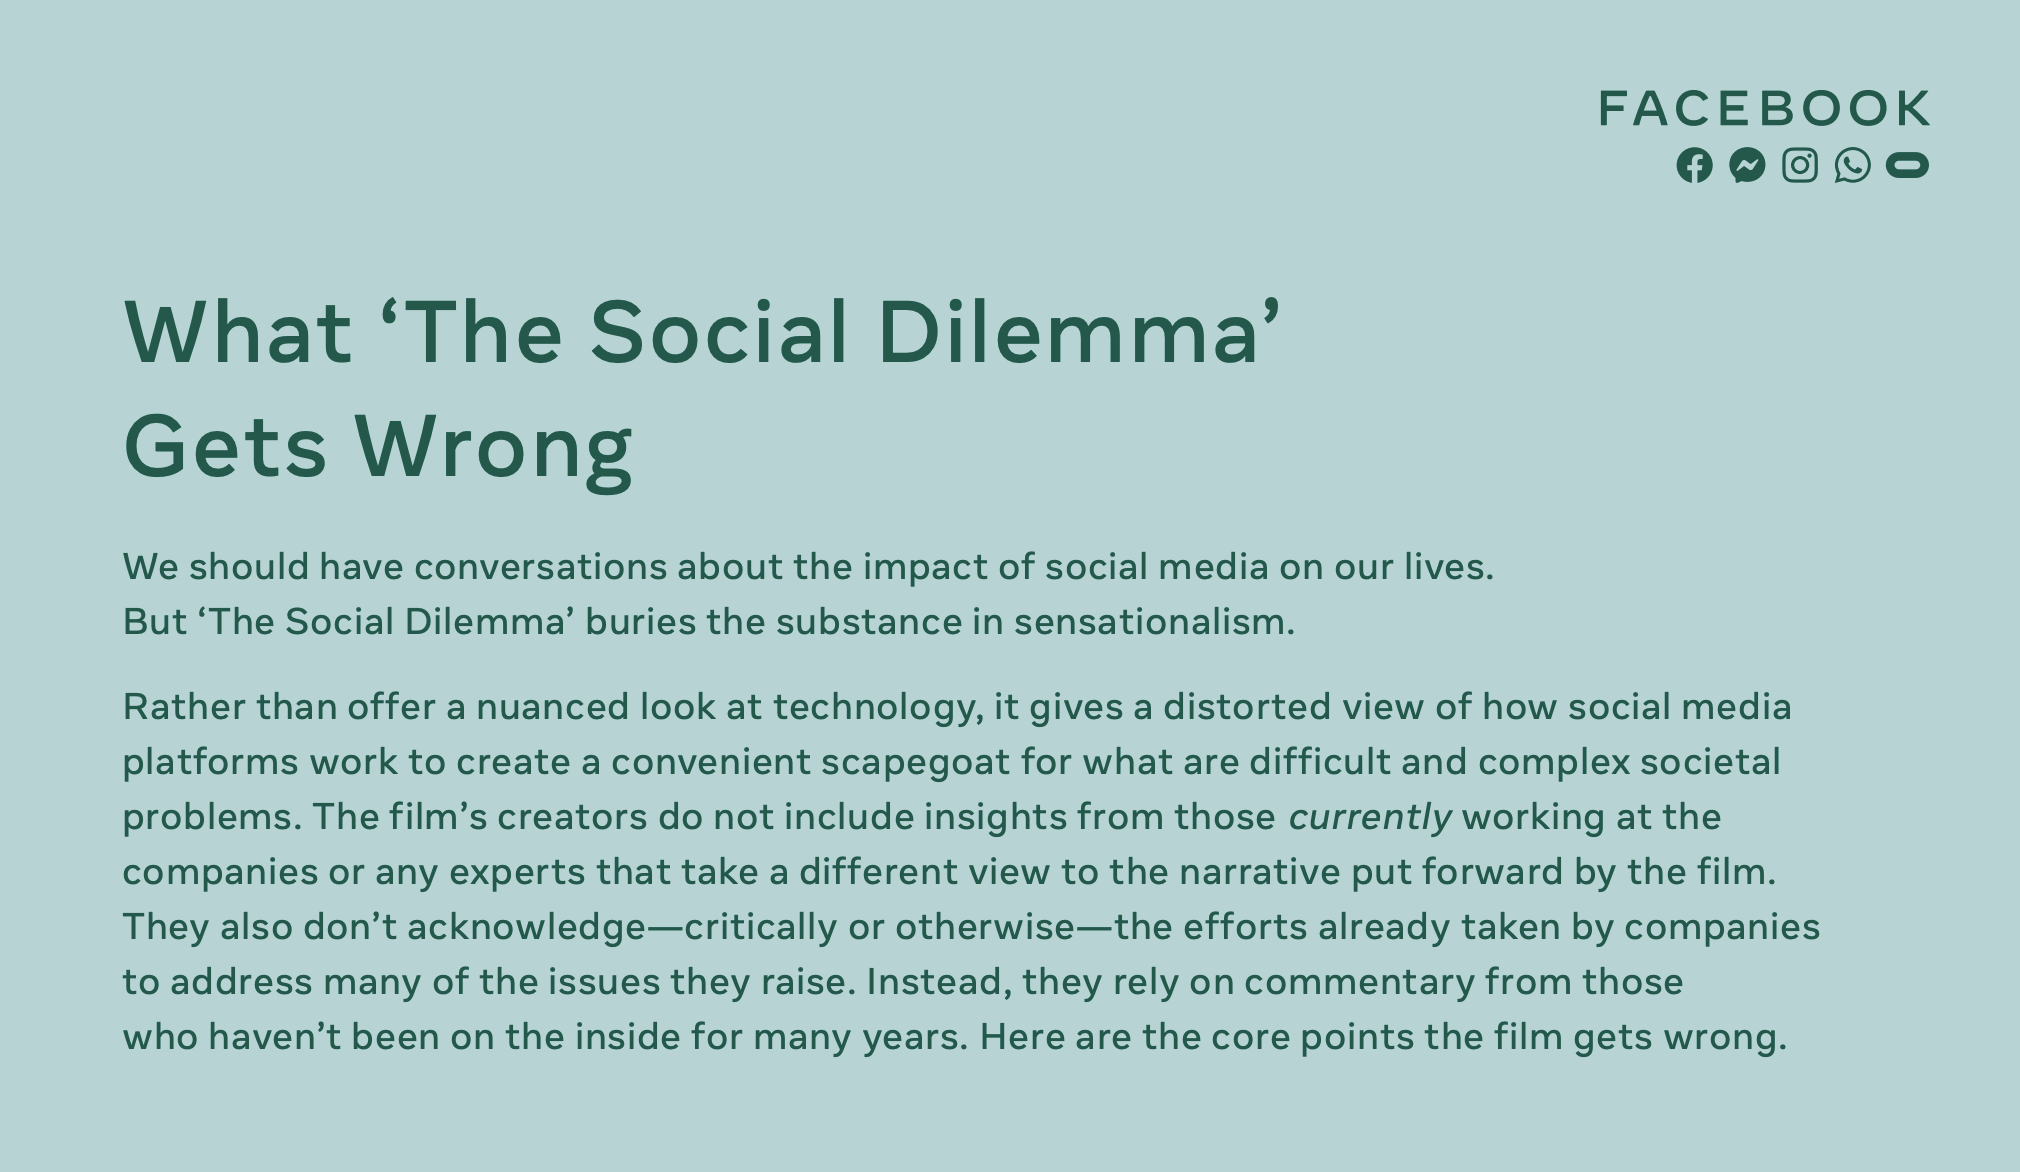 What 'The Social Dilemma' Gets Wrong